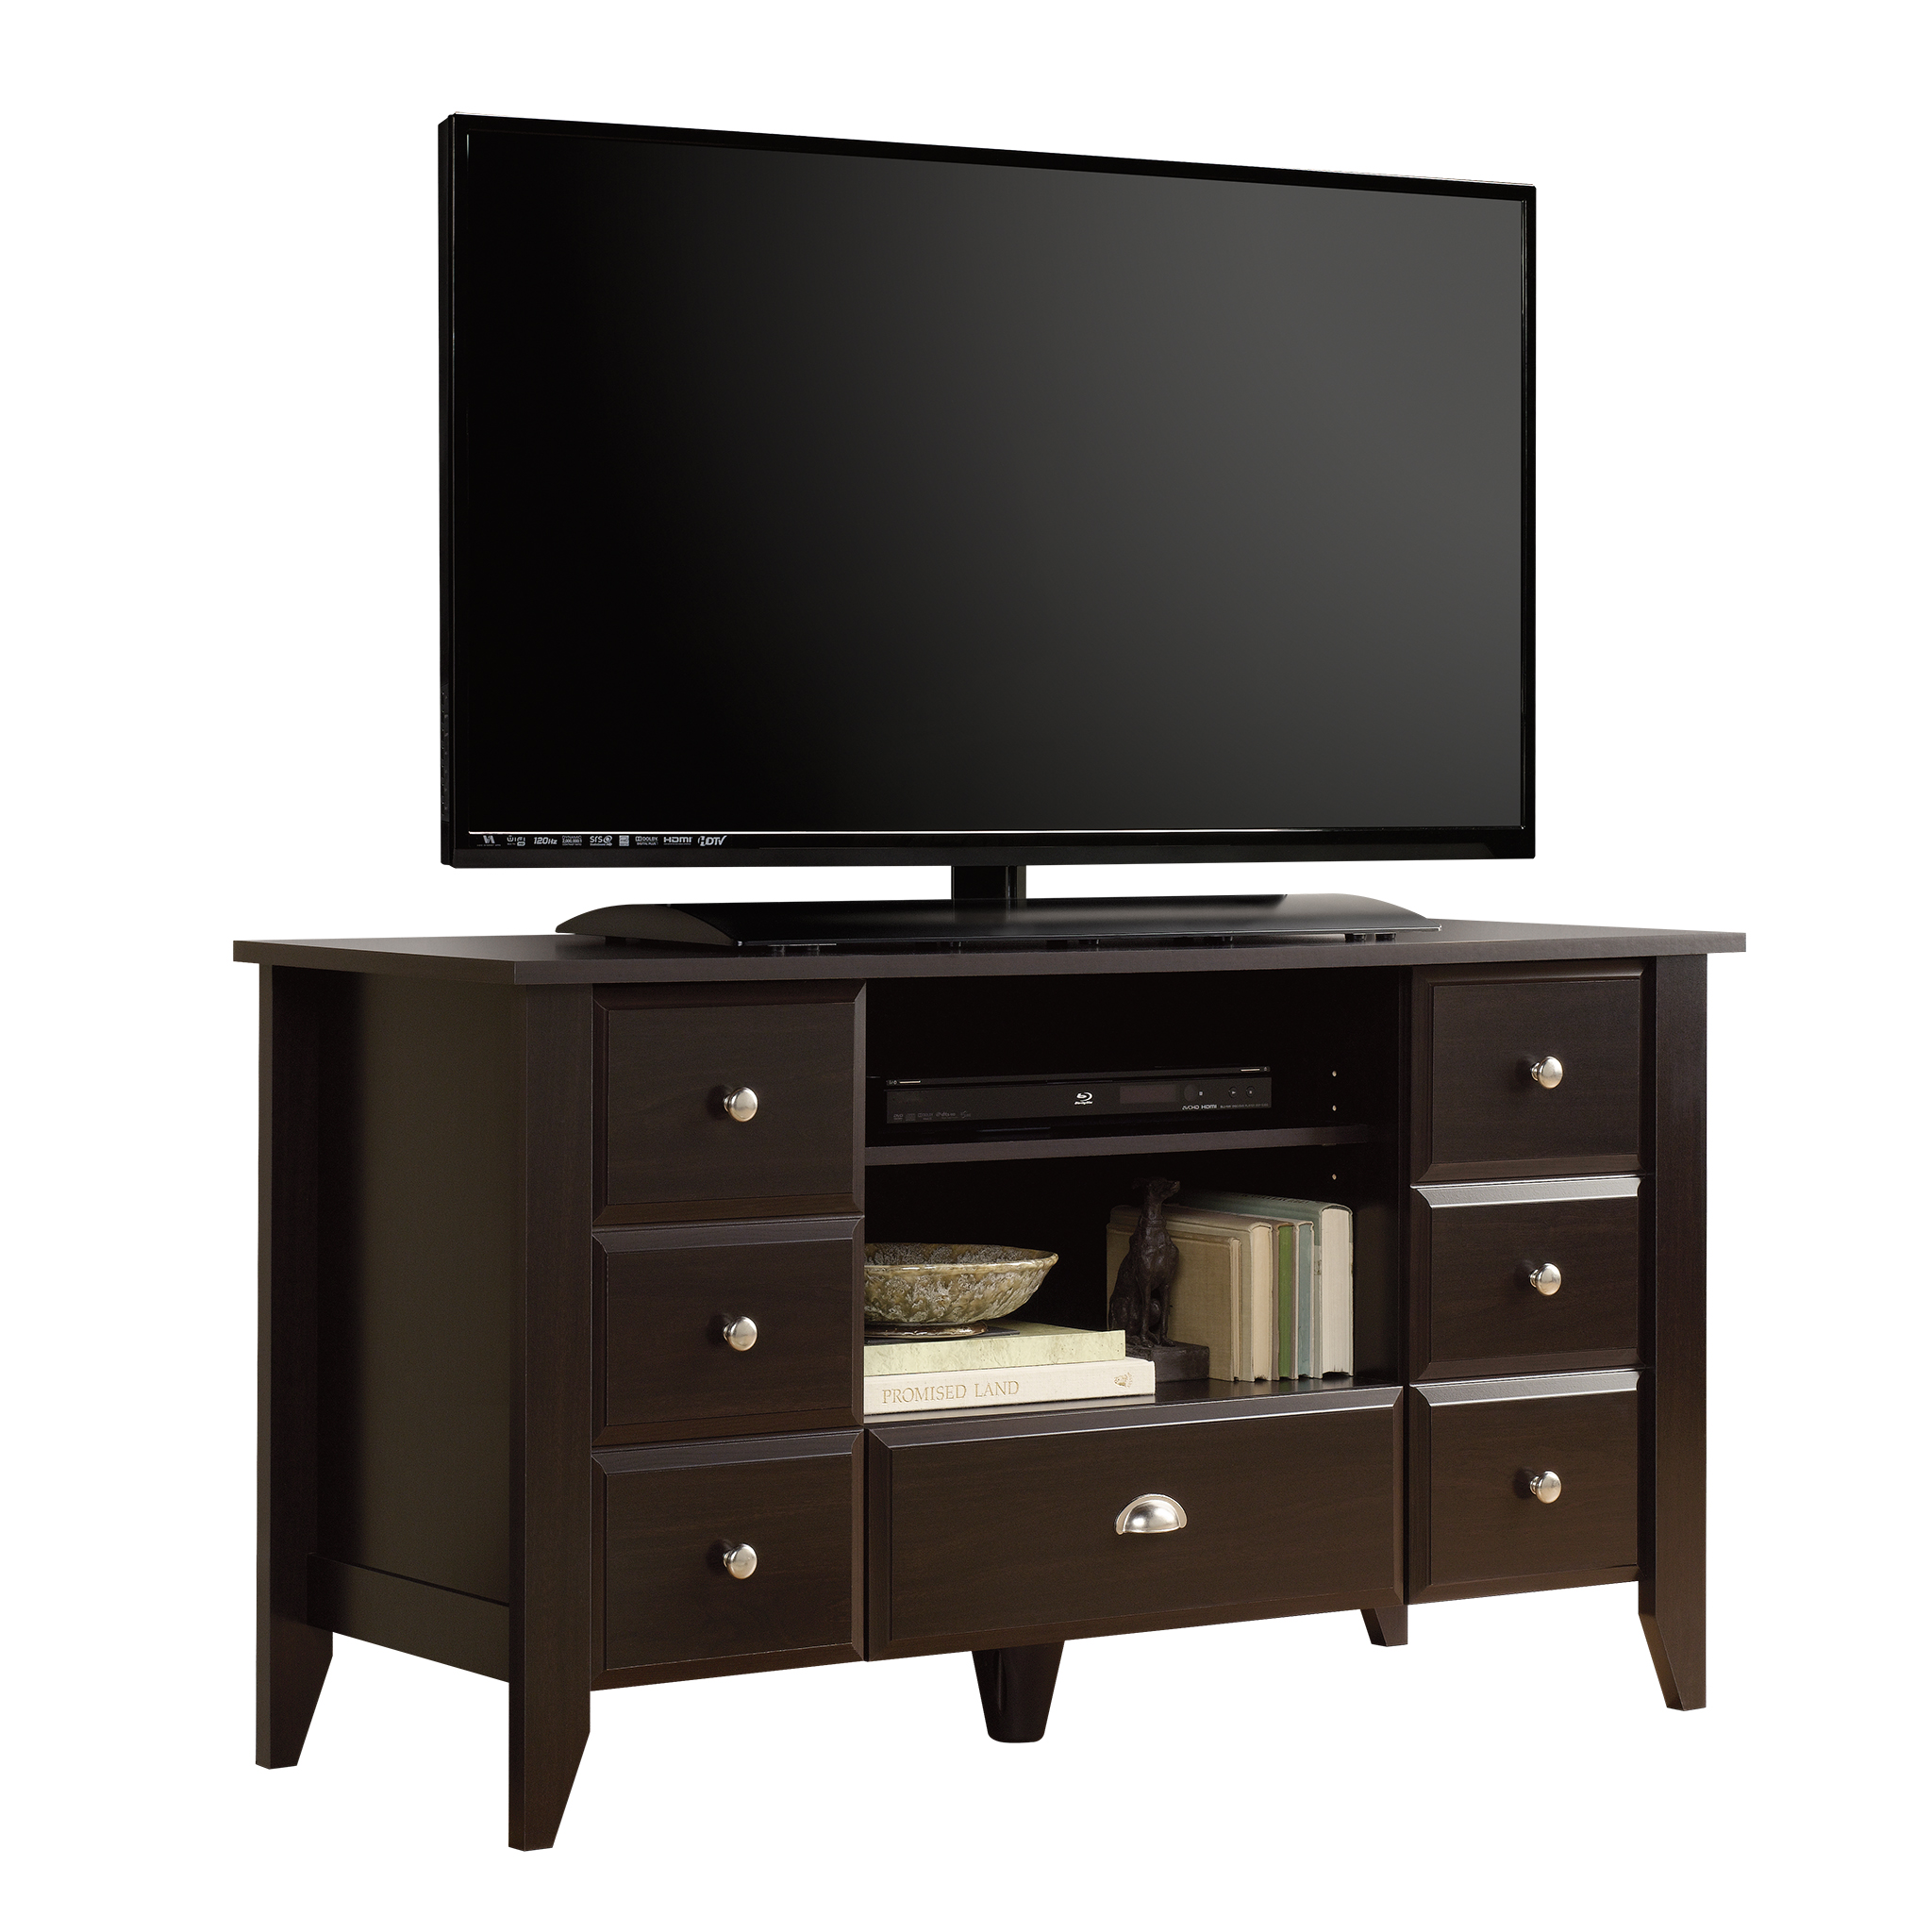 Sauder Shoal Creek Entertainment Credenza for TVs up to 50\ by Sauder Woodworking